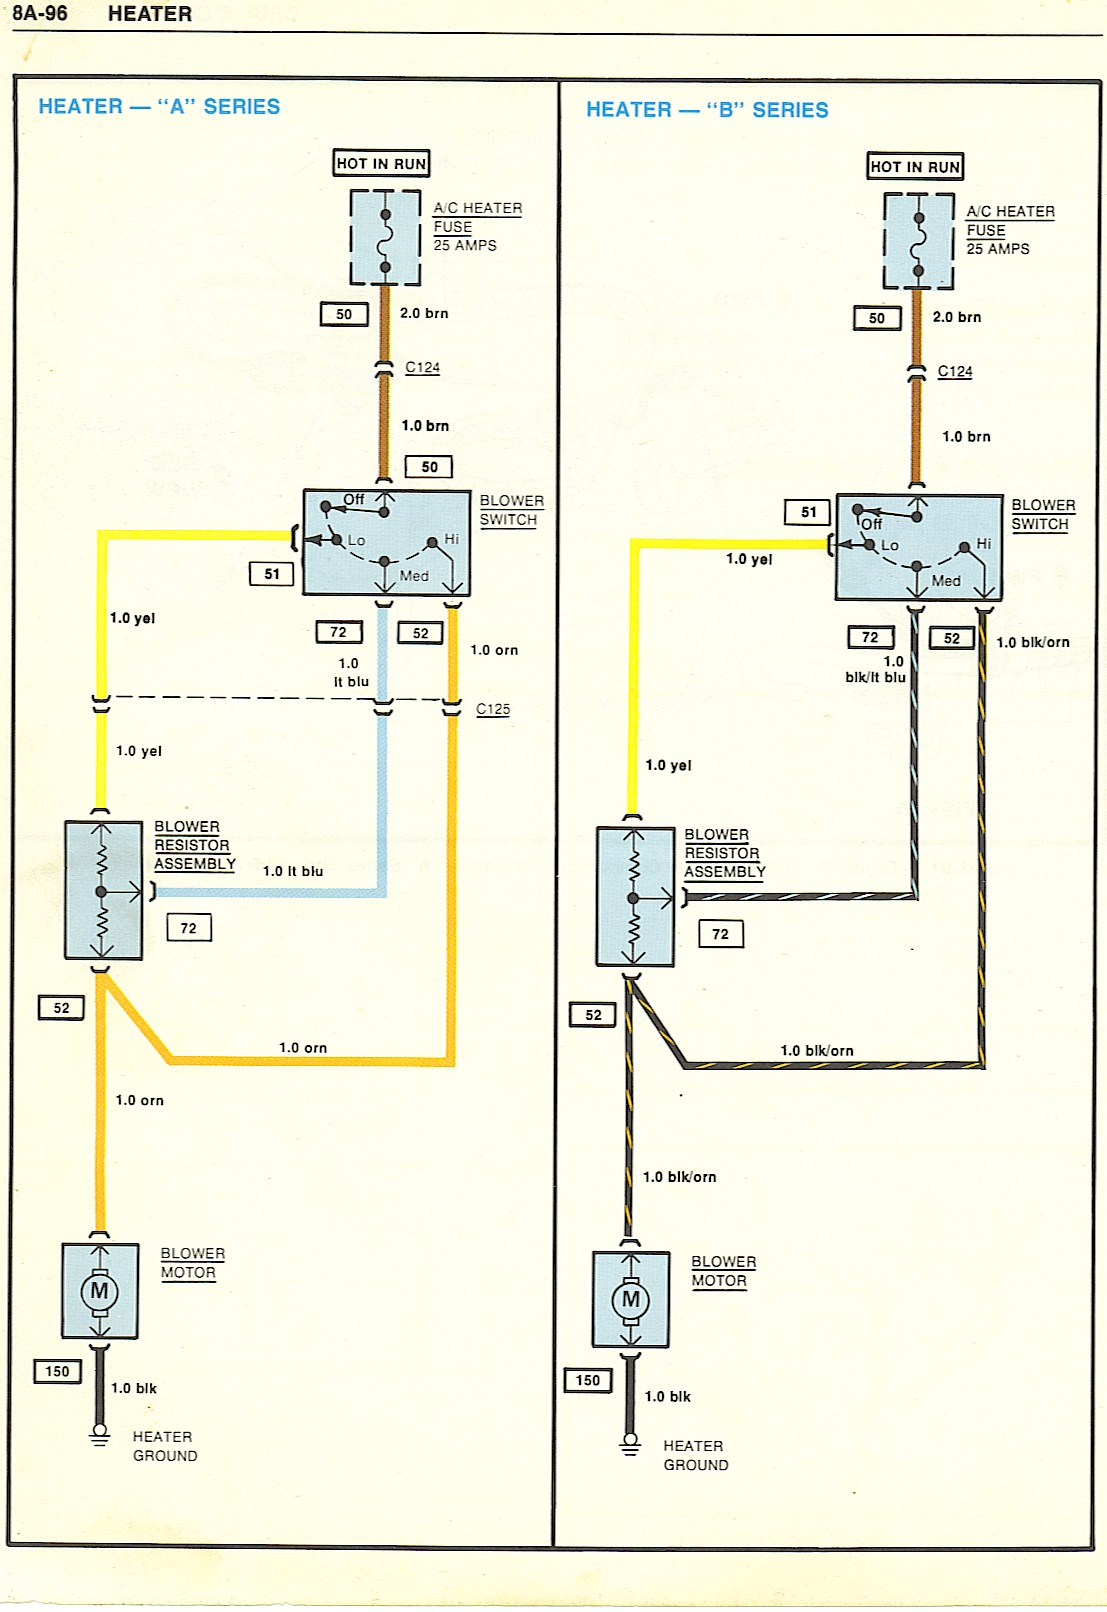 82 Gm Starter Wiring Trusted Diagram 1988 Chevy Wire Diagramalternatorg20 3 4 Ton Full Size Van 1975 Camaro Circuit Connection U2022 350